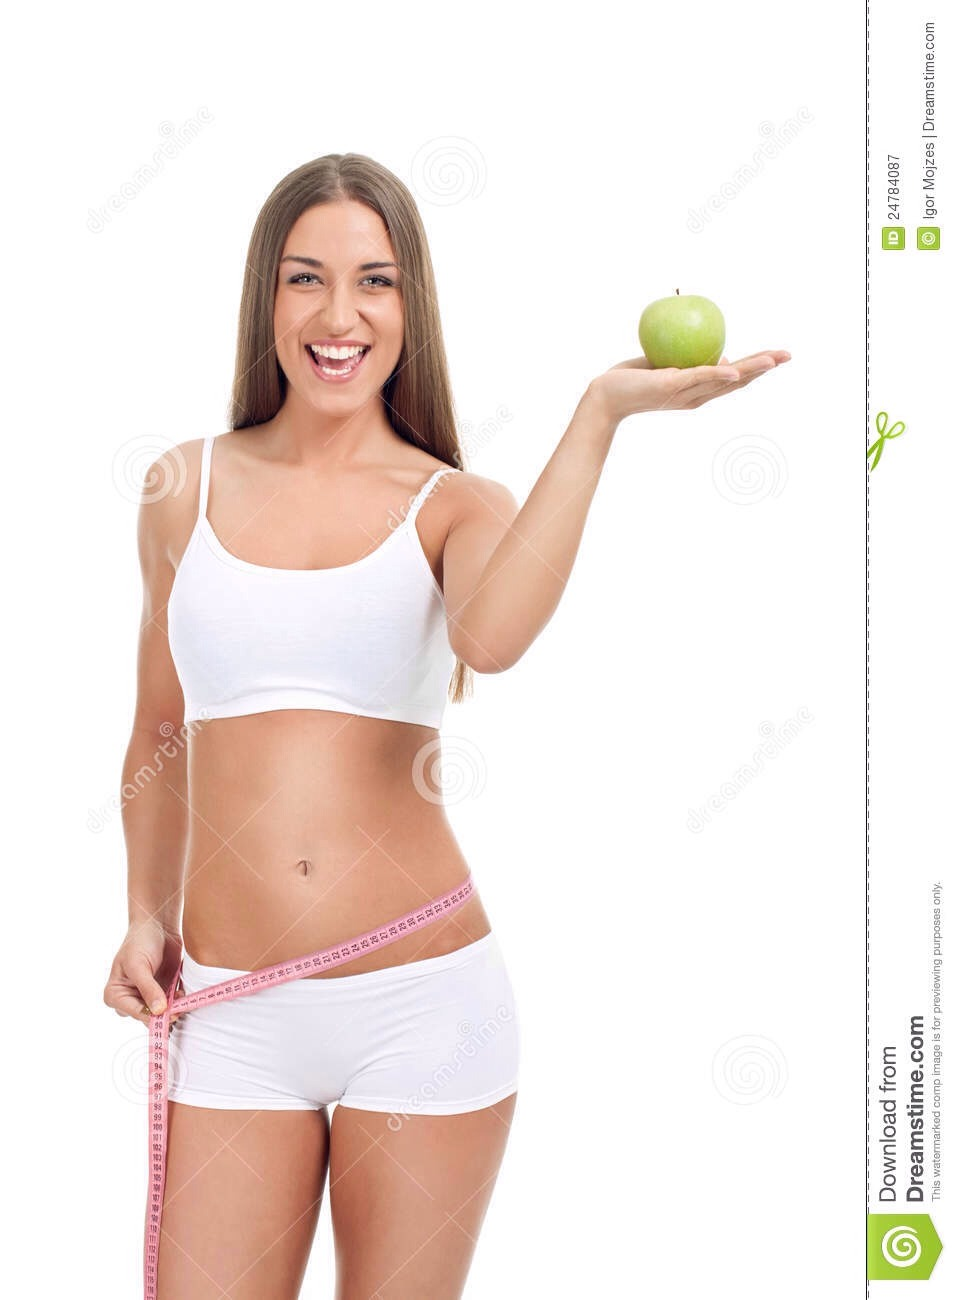 I just started a new diet plan and it's the best yet! It's called the blood type diet. There's a different diet plan for each blood type (A, B, AB, and O)!!! It lists foods that you should eat and avoid for each type!